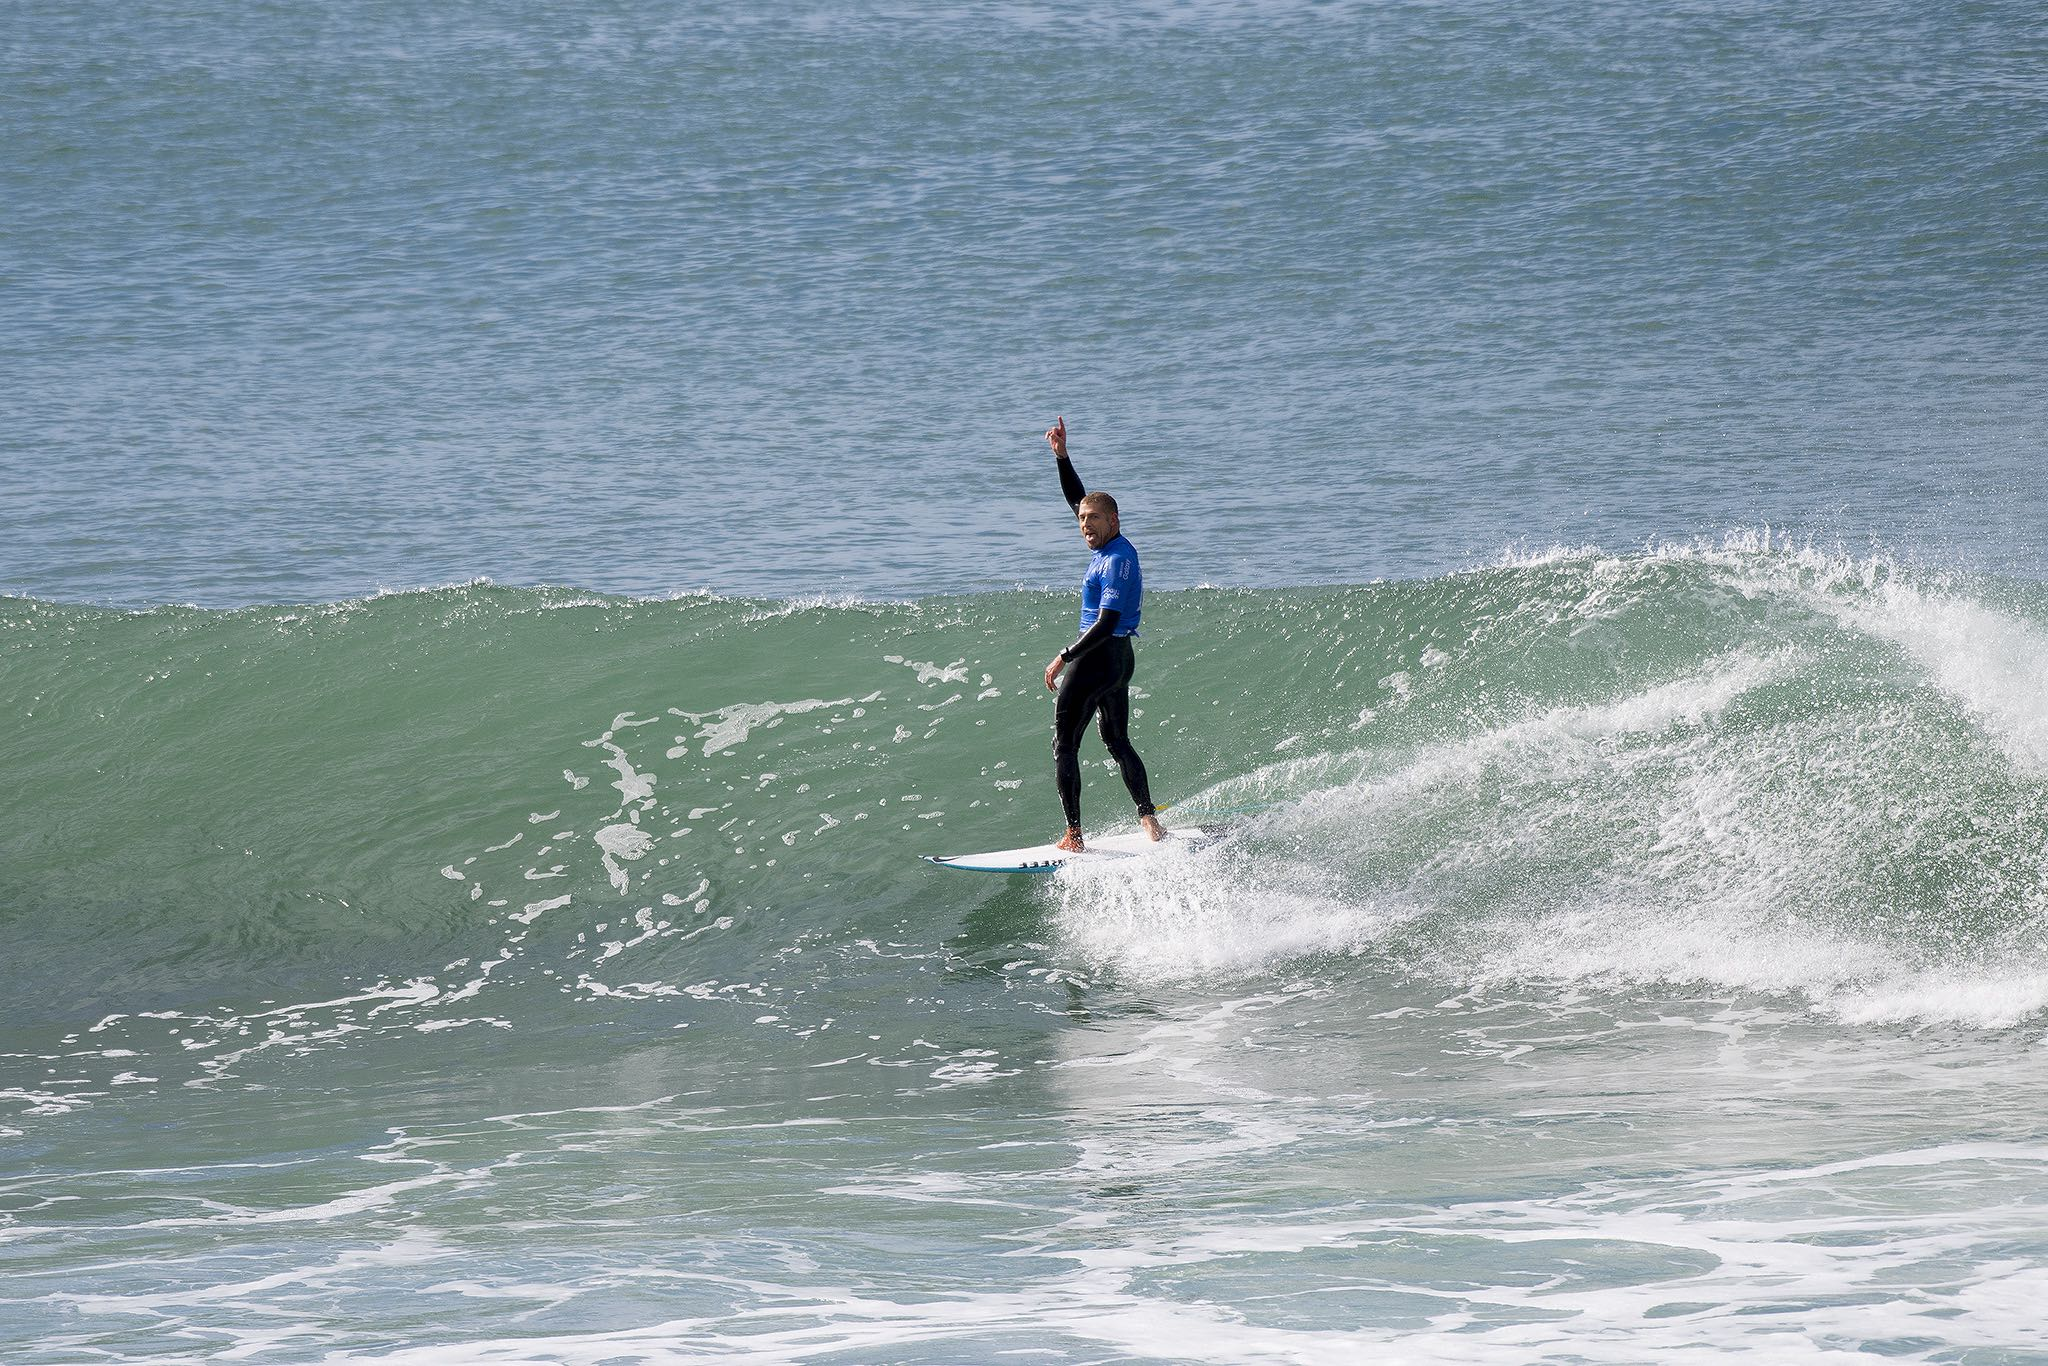 Mick Fanning claiming victory at the 2016 J-Bay Open of Surfing